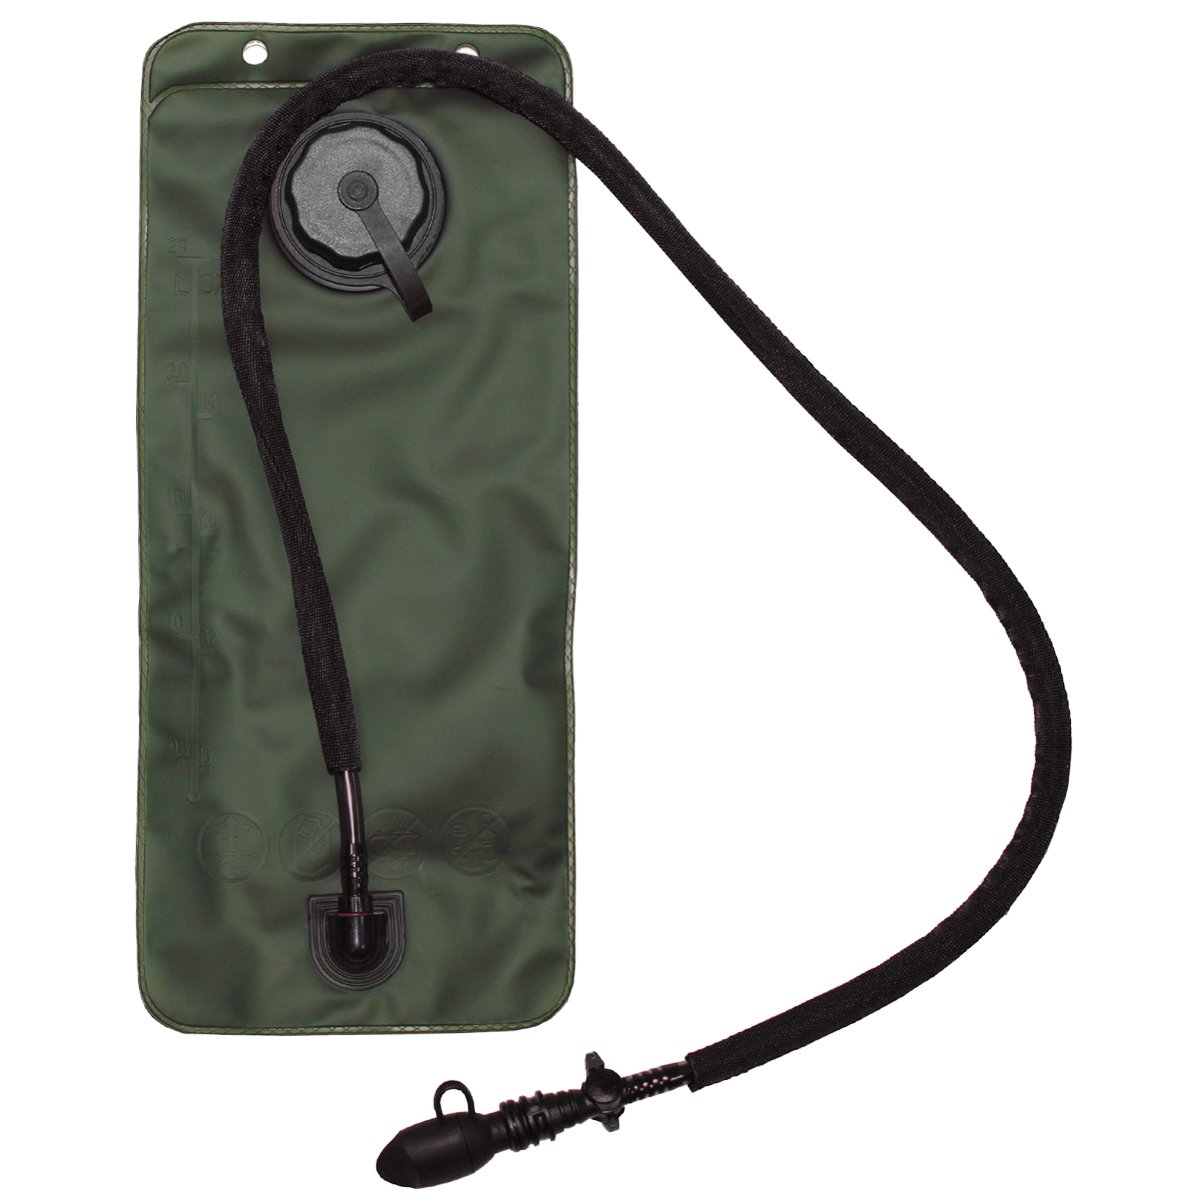 MFH Extreme TPU Bladder For Hydration Pack 2.5L by MFH